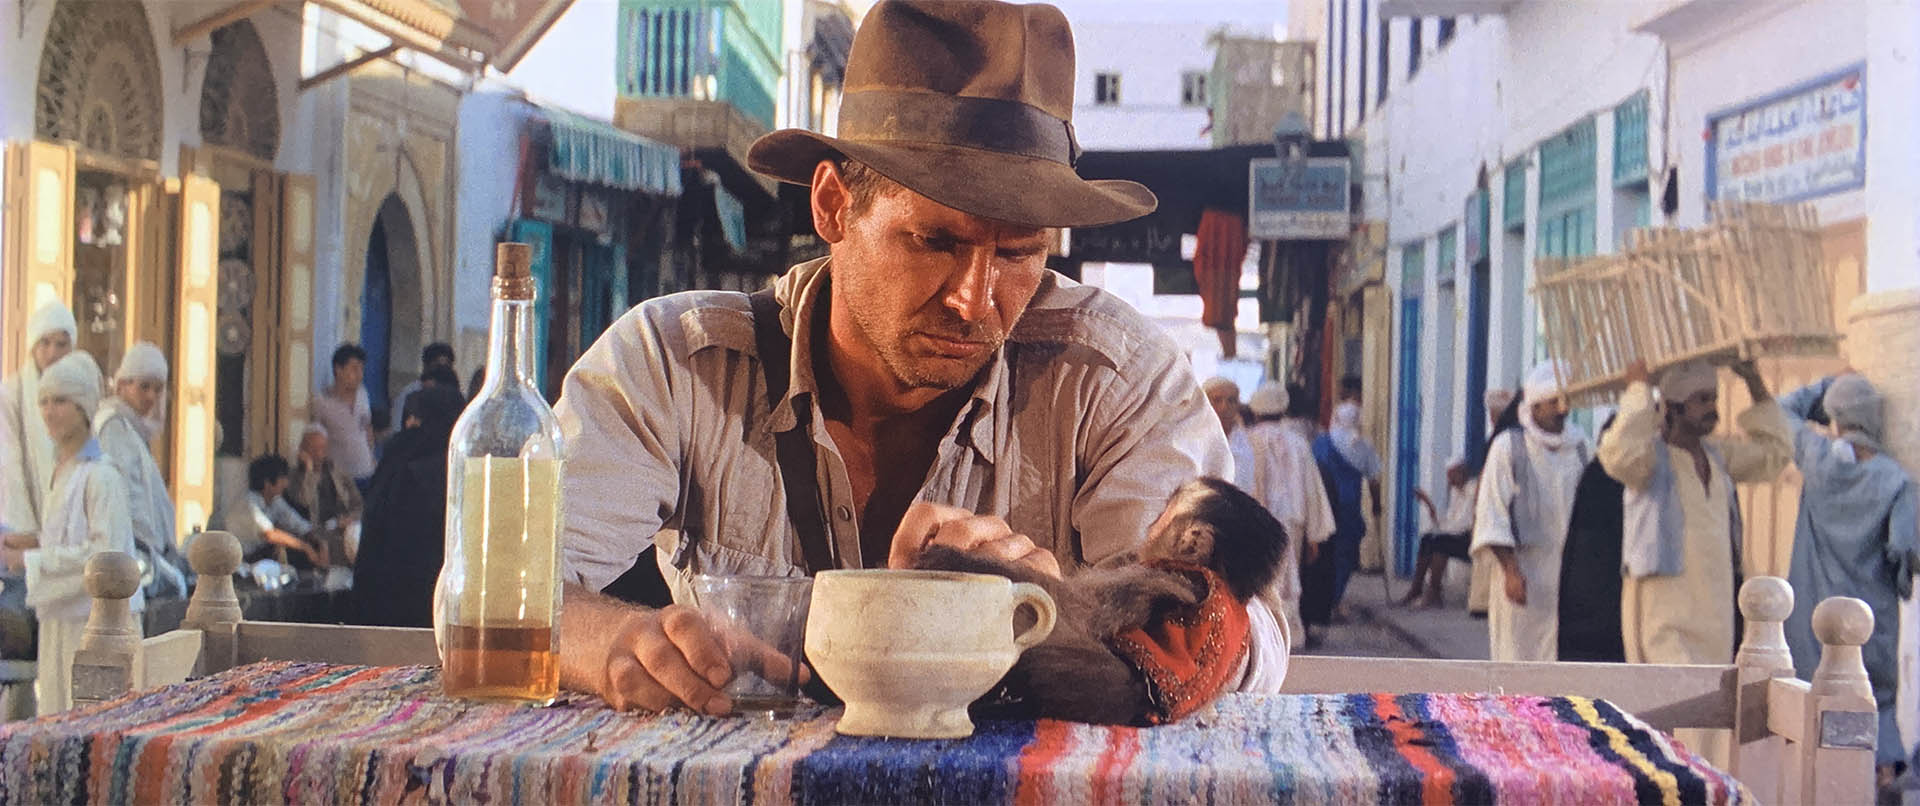 indiana jones and the raiders of the lost ark 4k blu-ray still 2